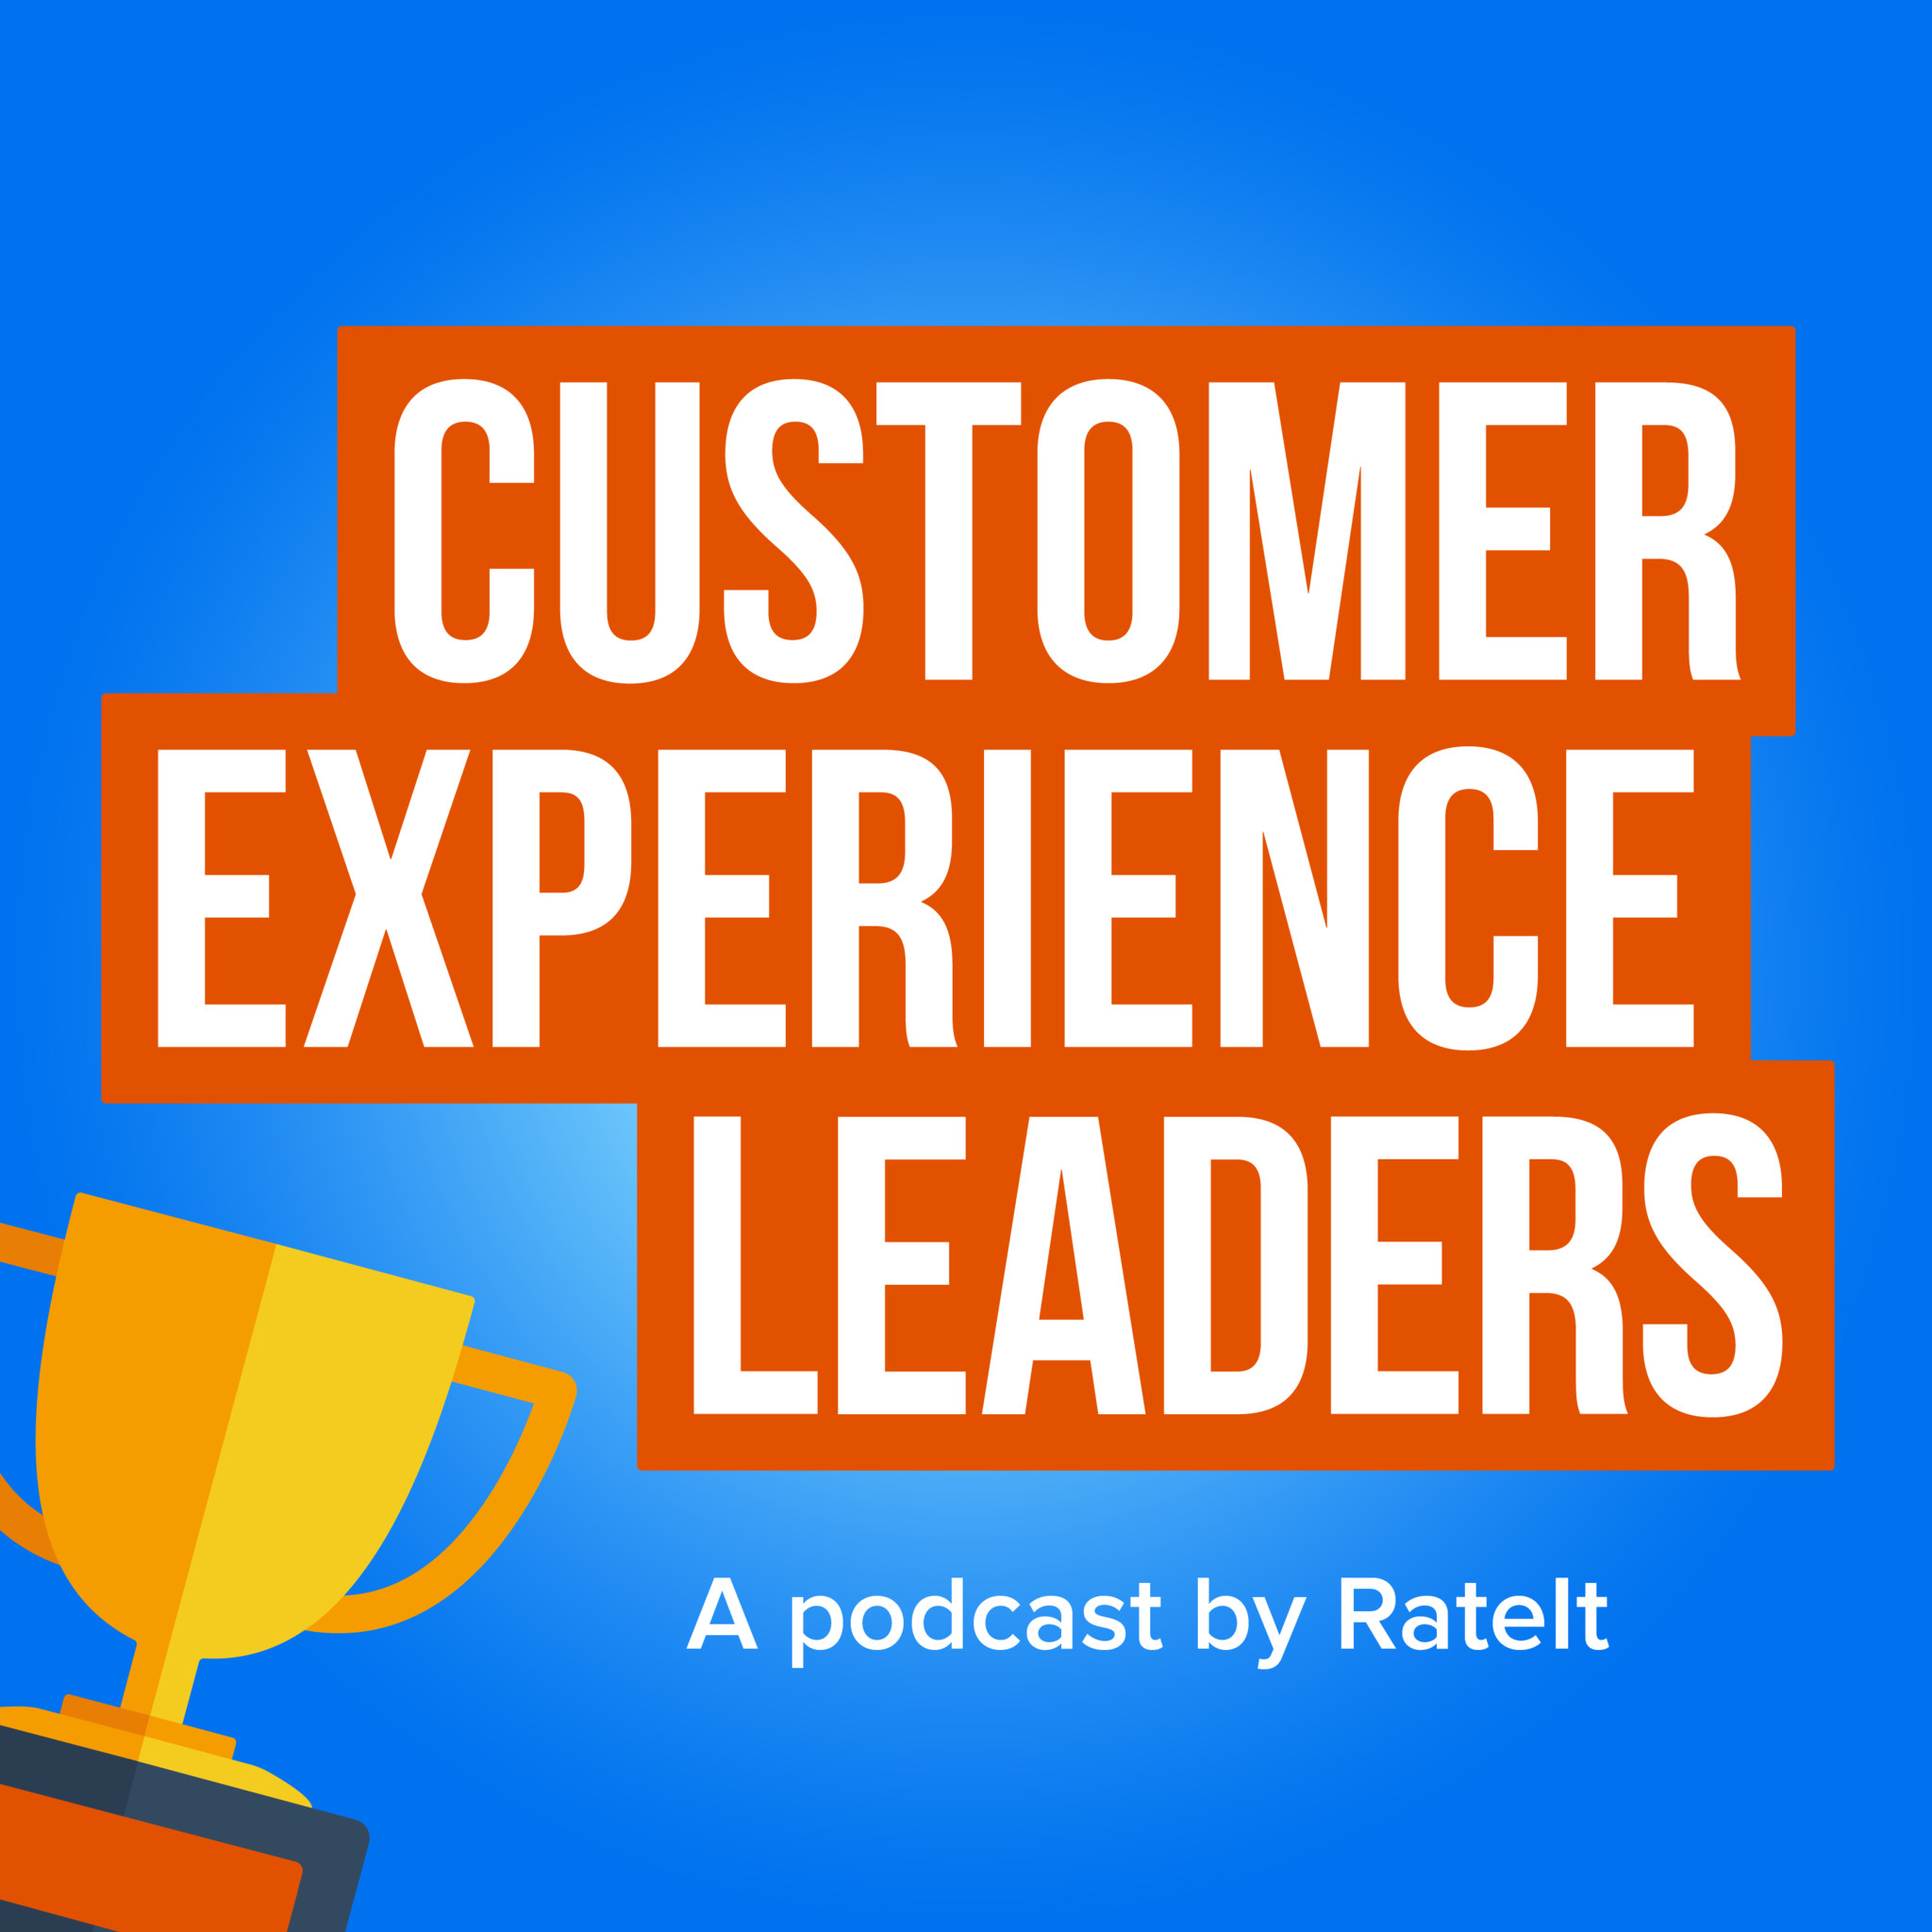 Customer Experience Leaders